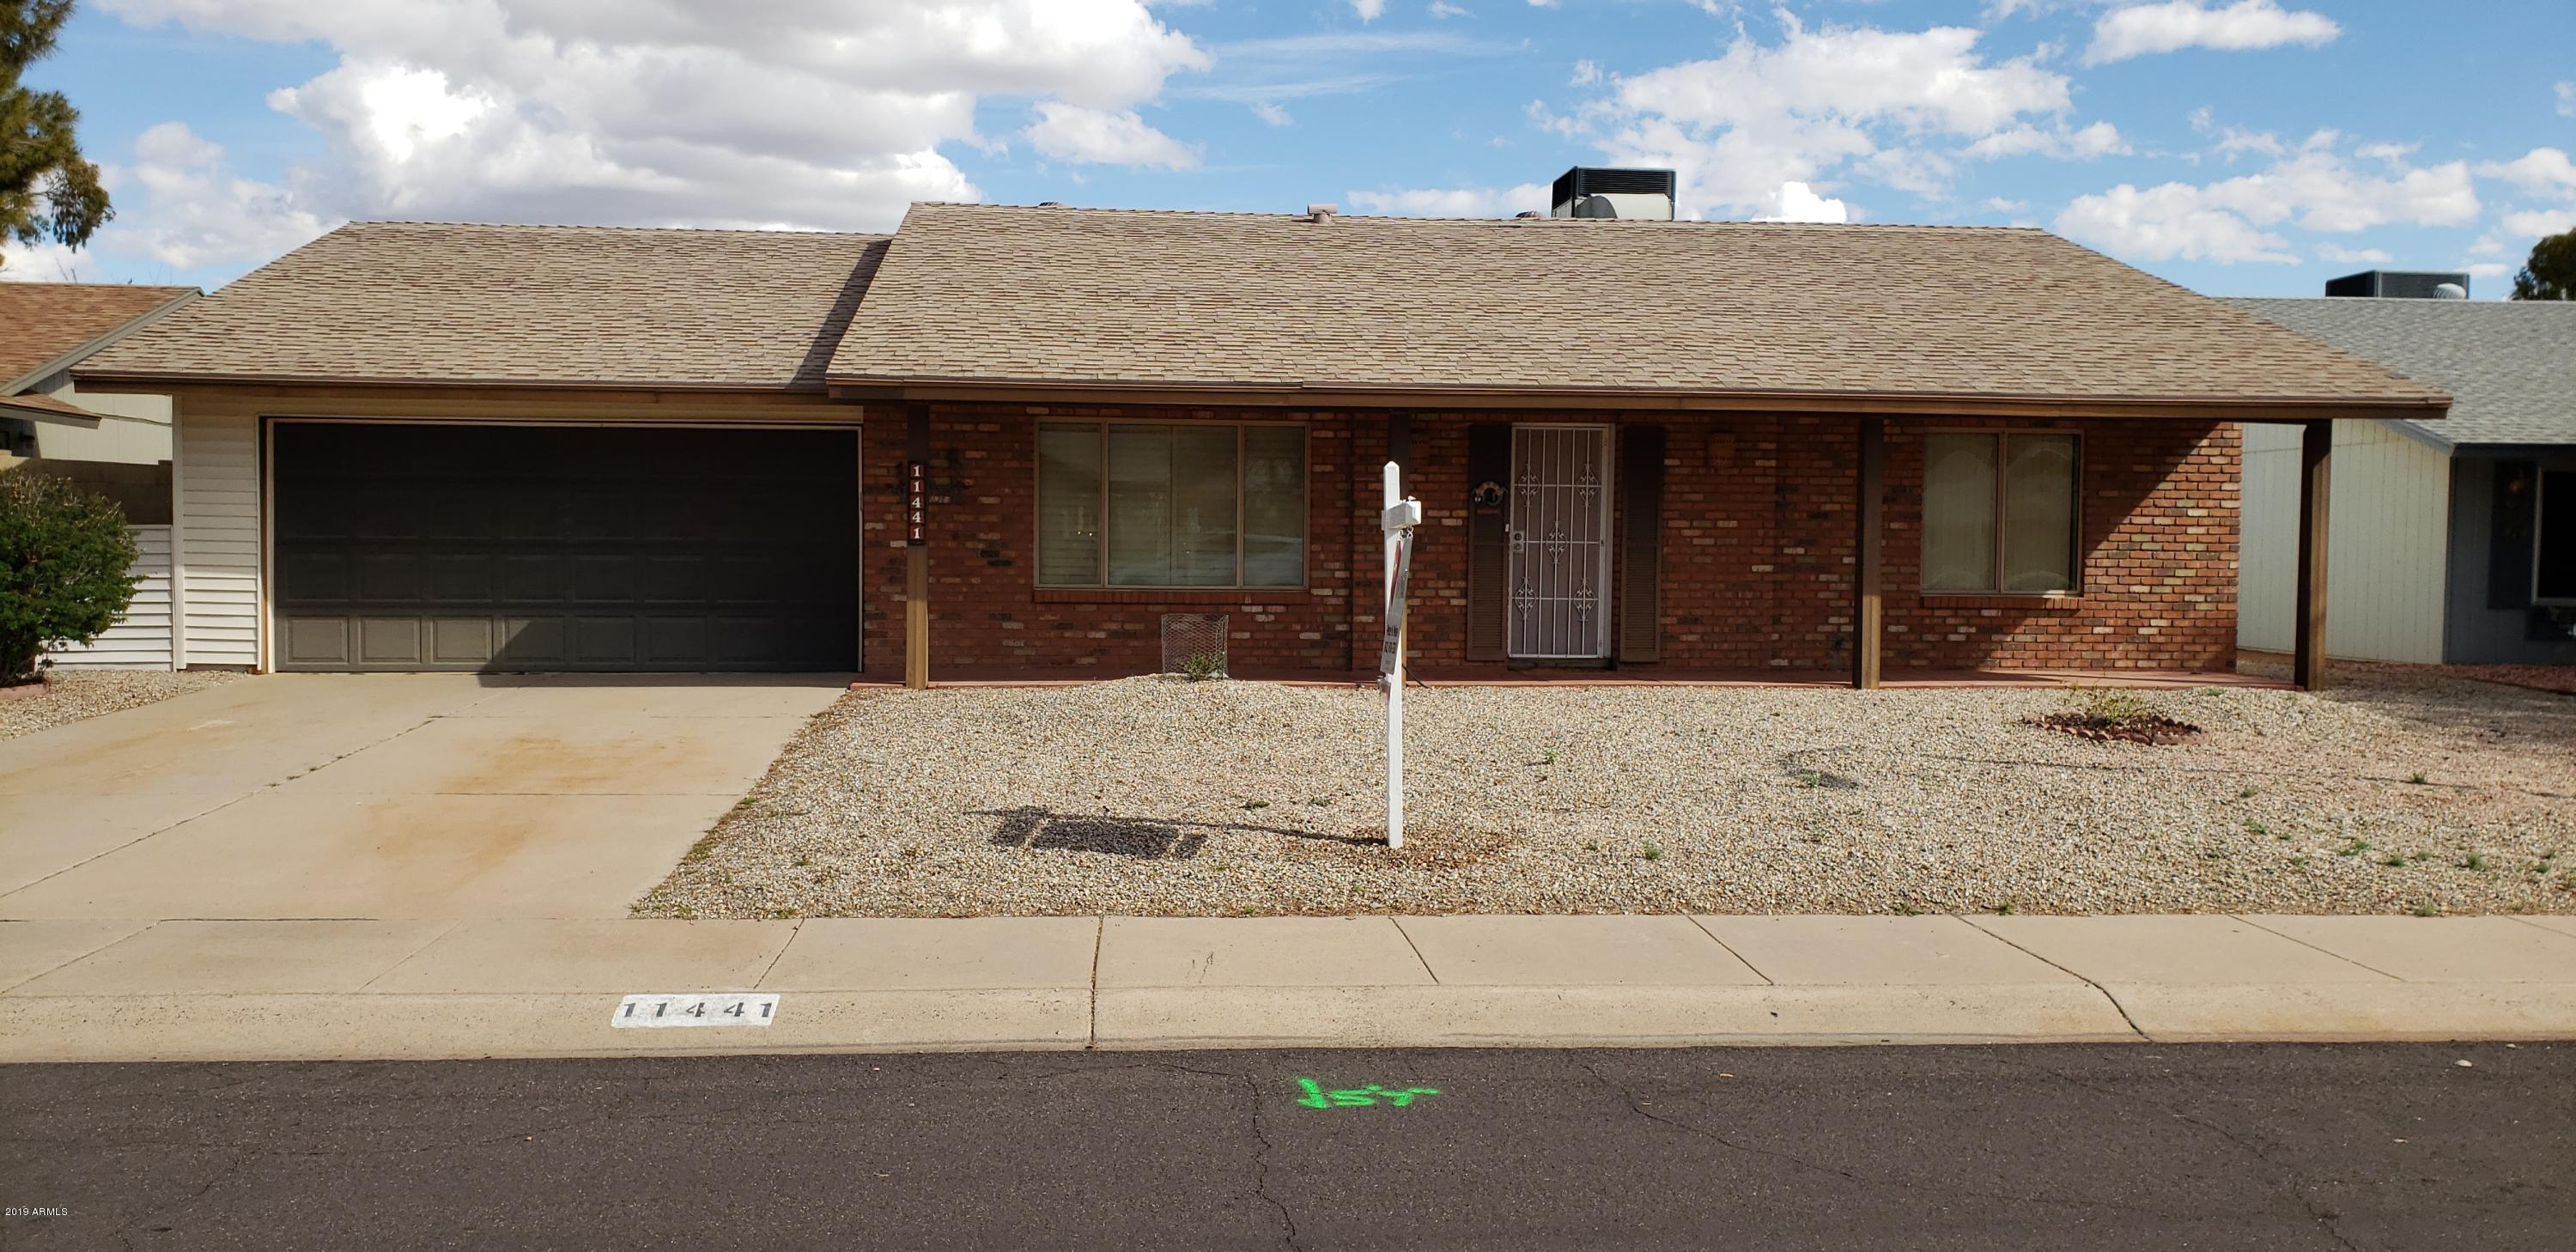 Photo of 11441 S MOHAVE Street, Phoenix, AZ 85044